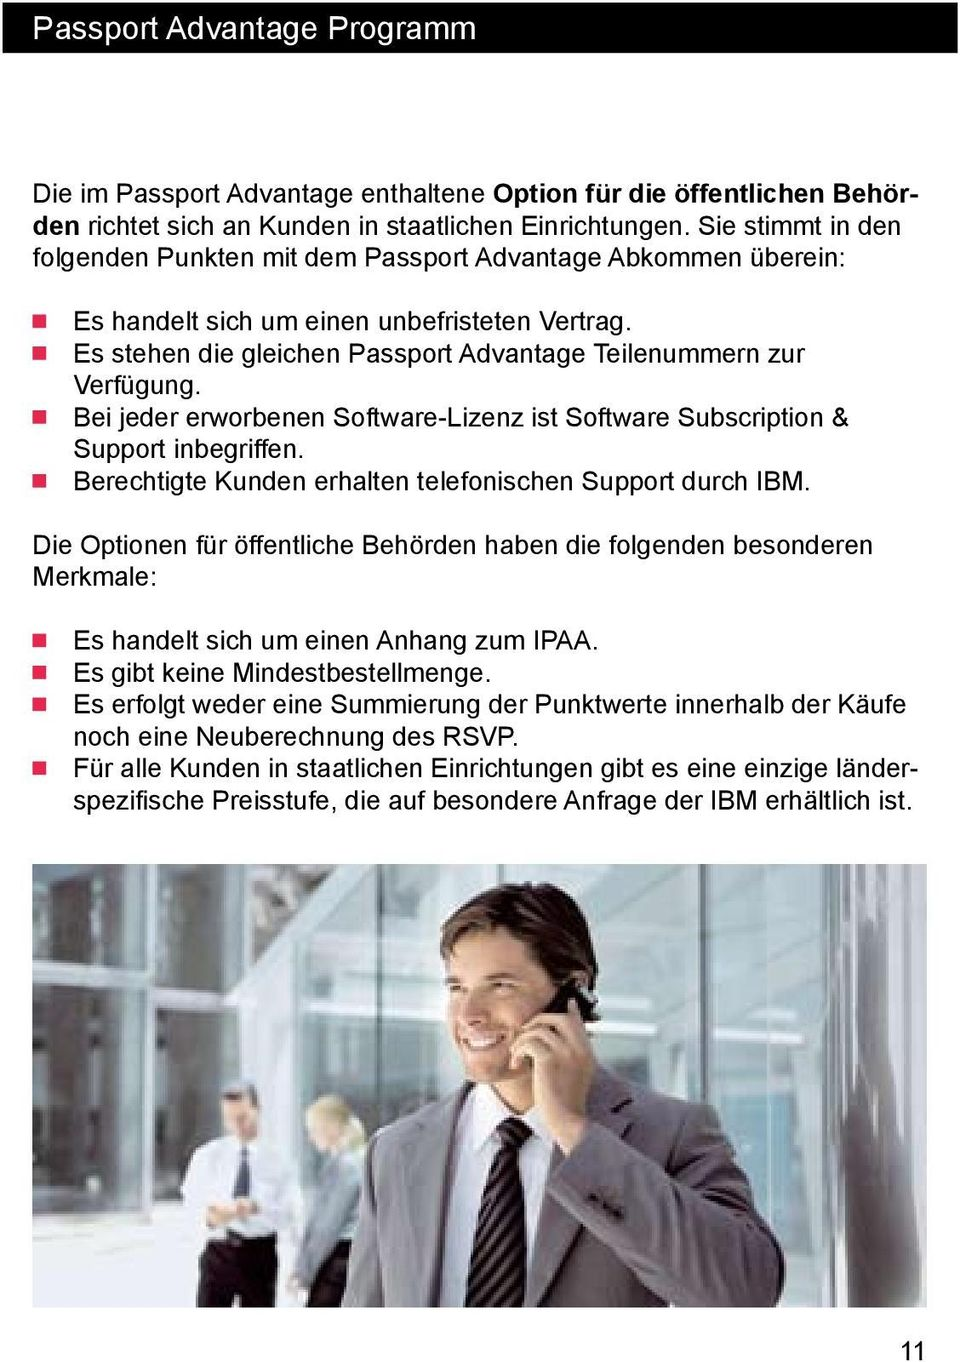 Bei jeder erworbenen Software-Lizenz ist Software Subscription & Support inbegriffen. Berechtigte Kunden erhalten telefonischen Support durch IBM.